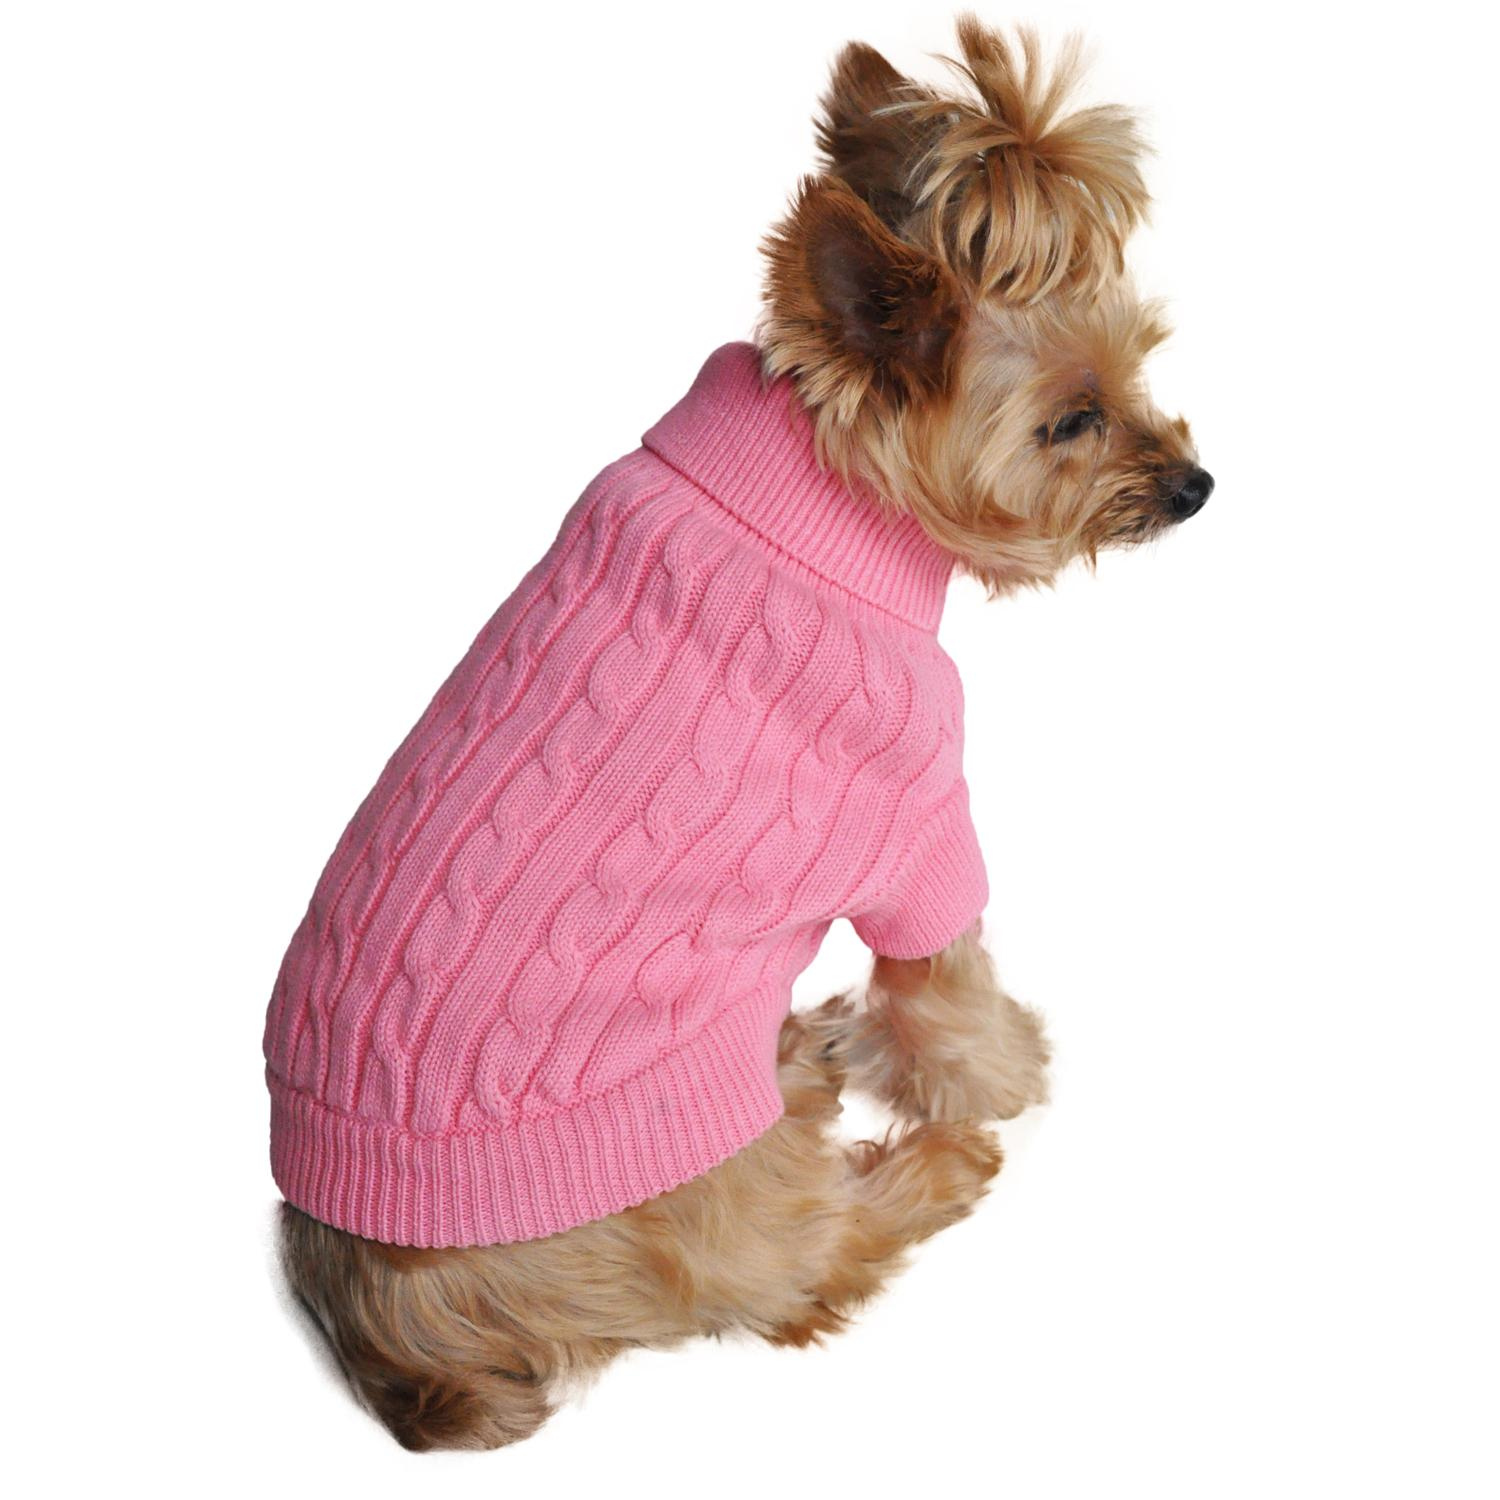 Cable Knit Dog Sweater by Doggie Design - Candy Pink